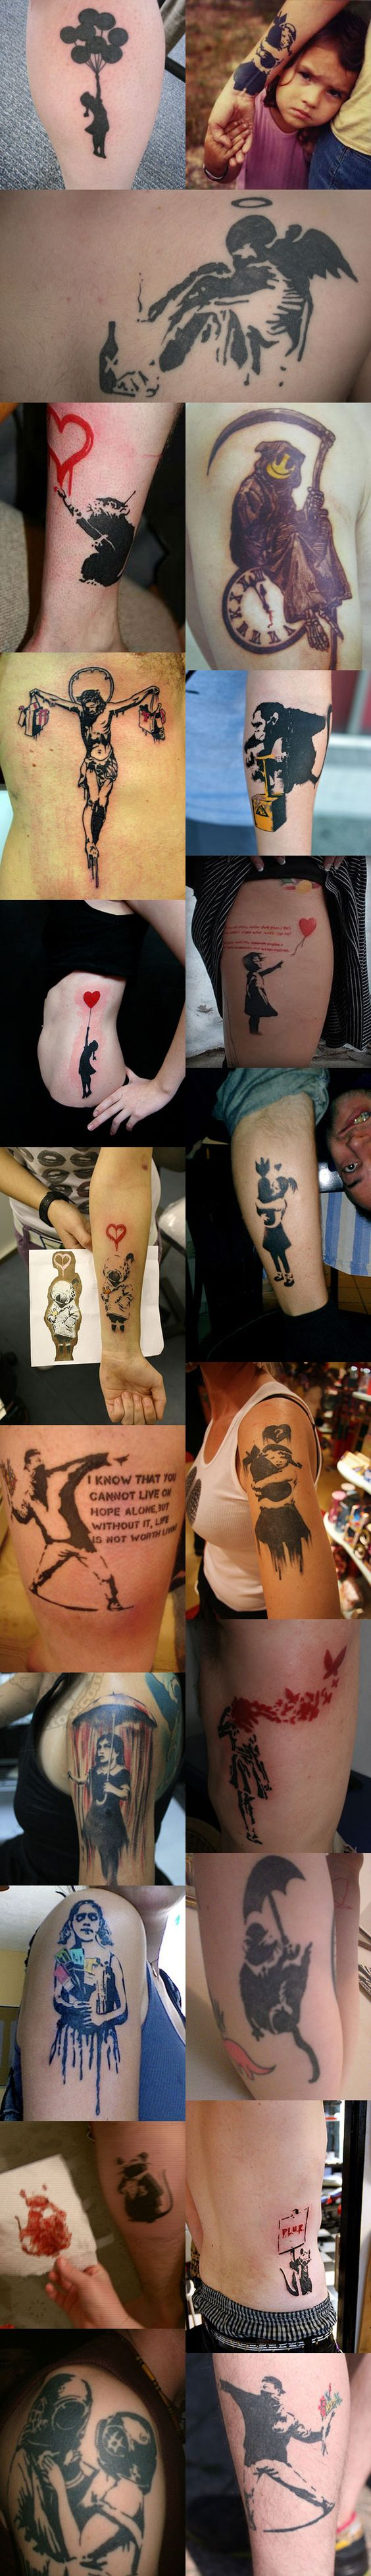 collection of bansky art tattoos...absolutely love this